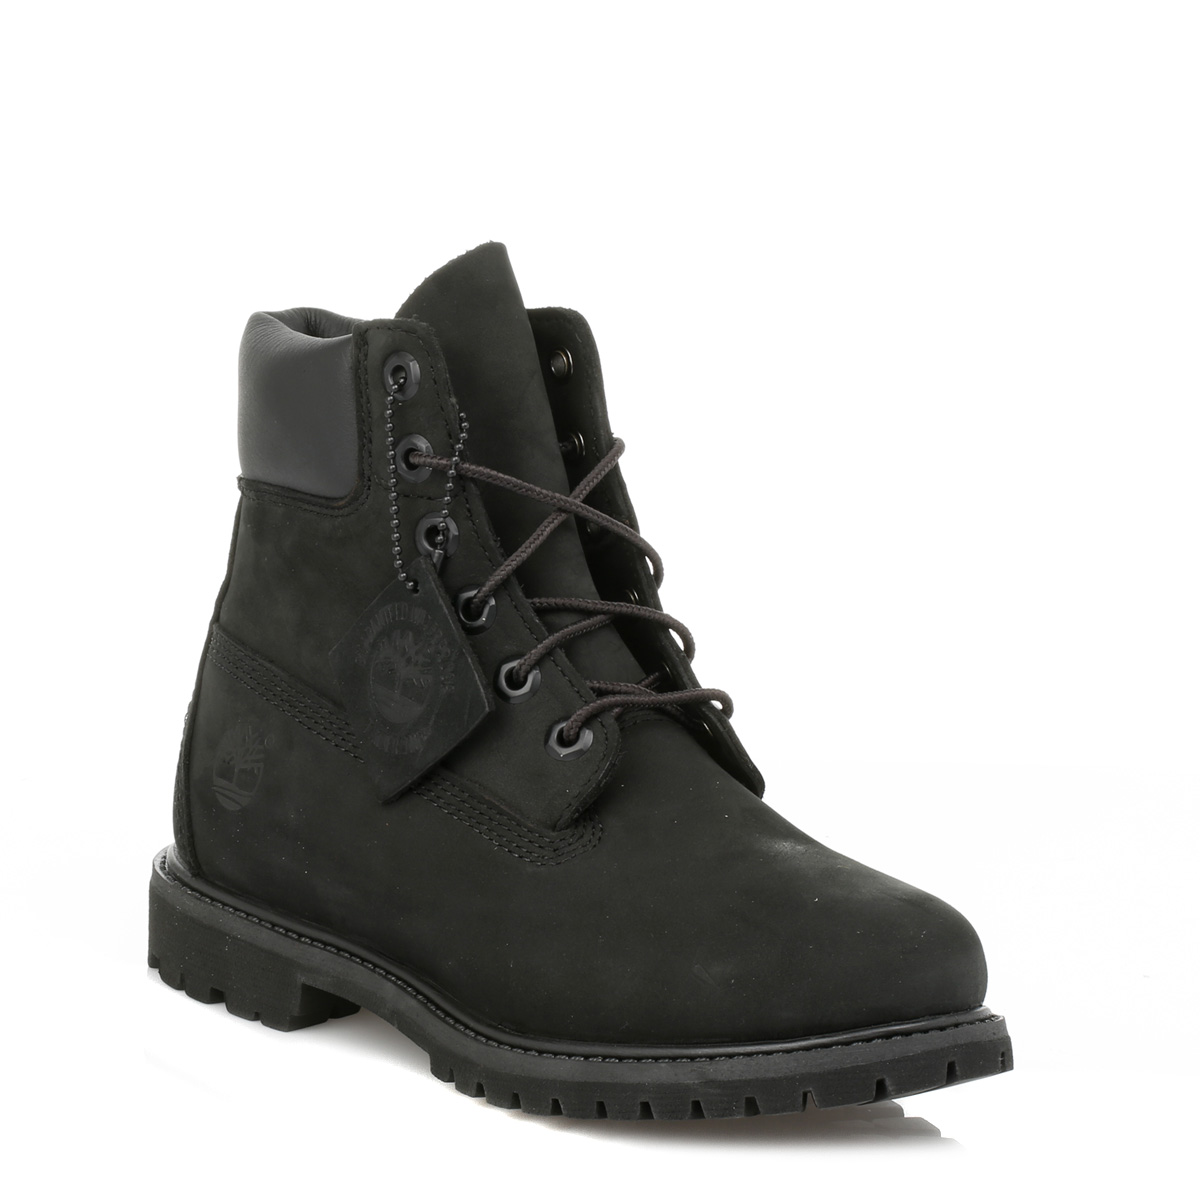 Details about Timberland Women Ankle Boots Black 6